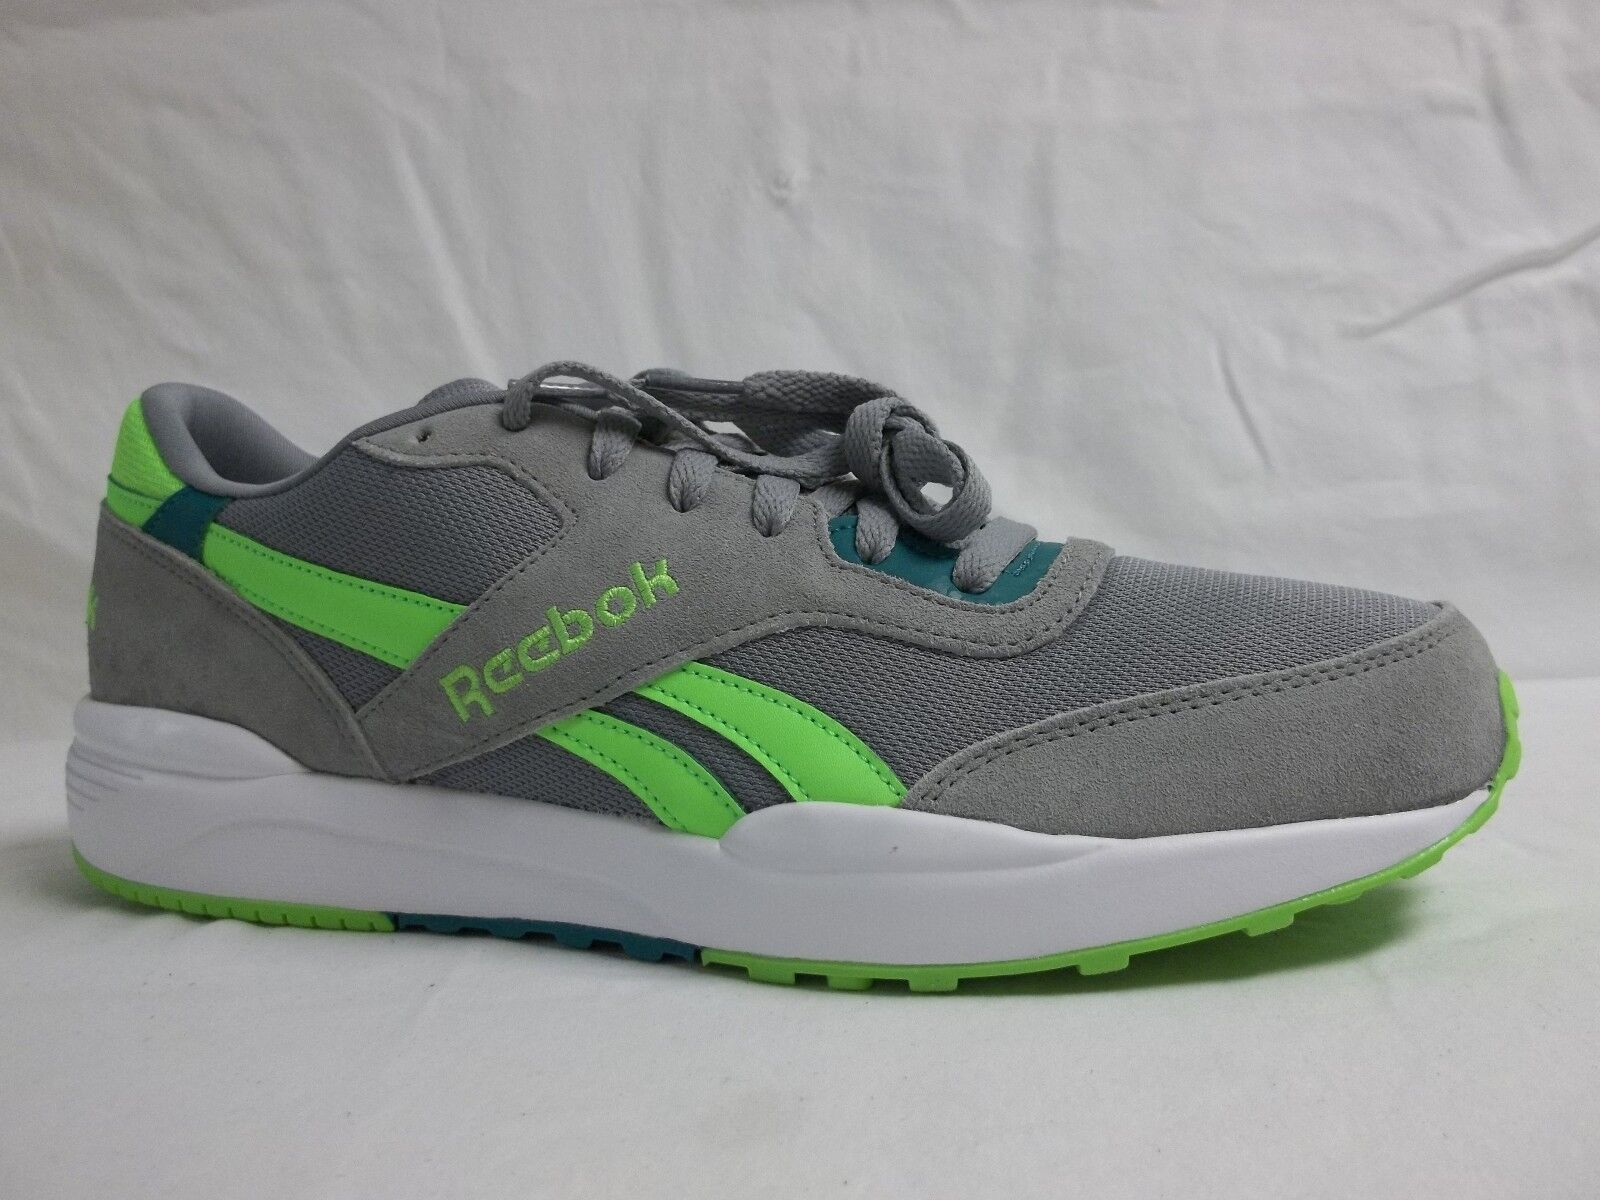 Reebok Size 11 M Royal Chase Grey Leather Athletic Sneakers New Mens shoes NWOB